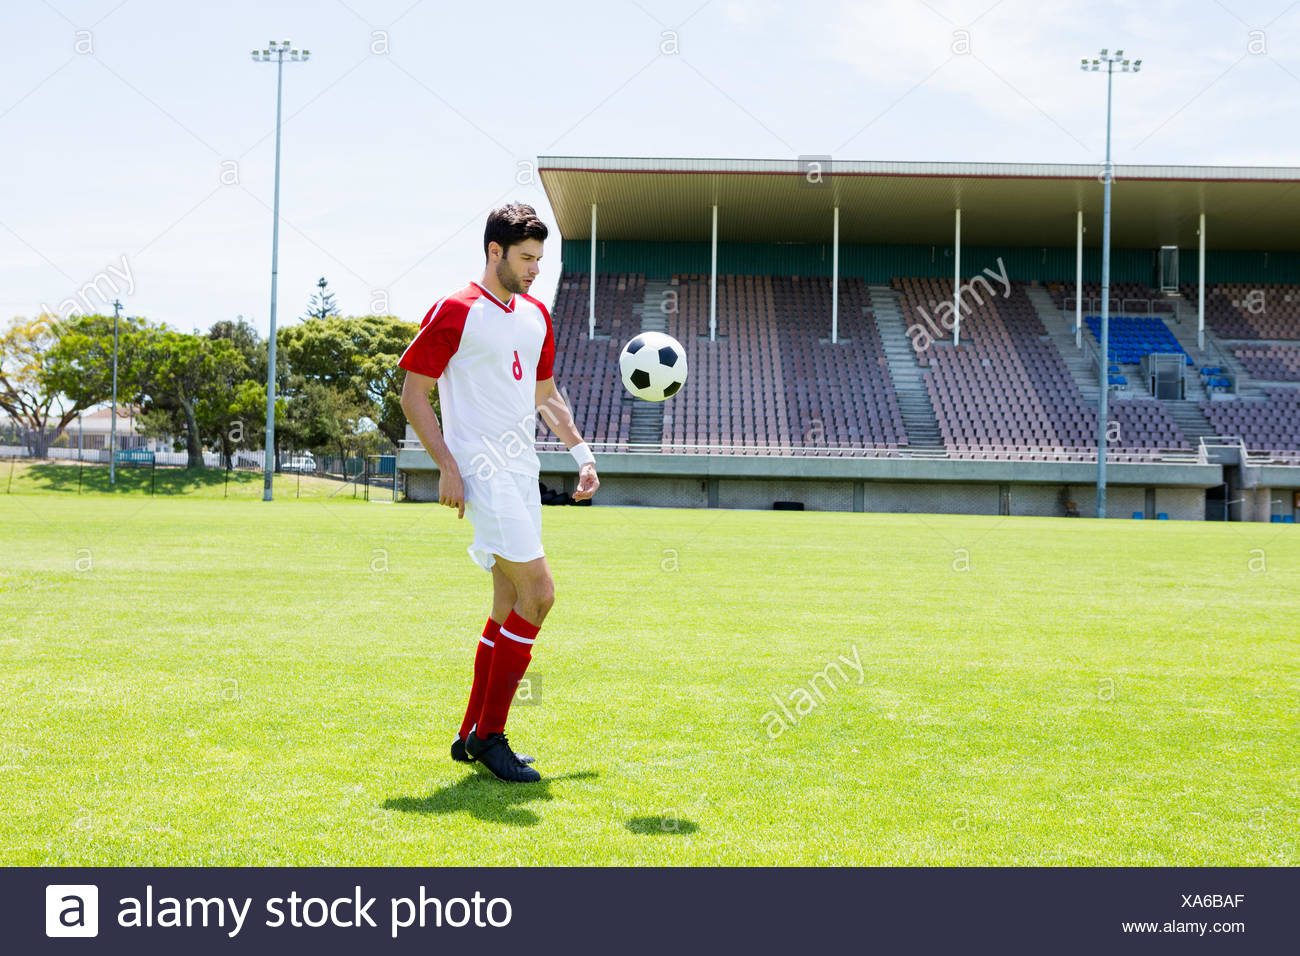 Football player juggling the football with his feet - Stock Image